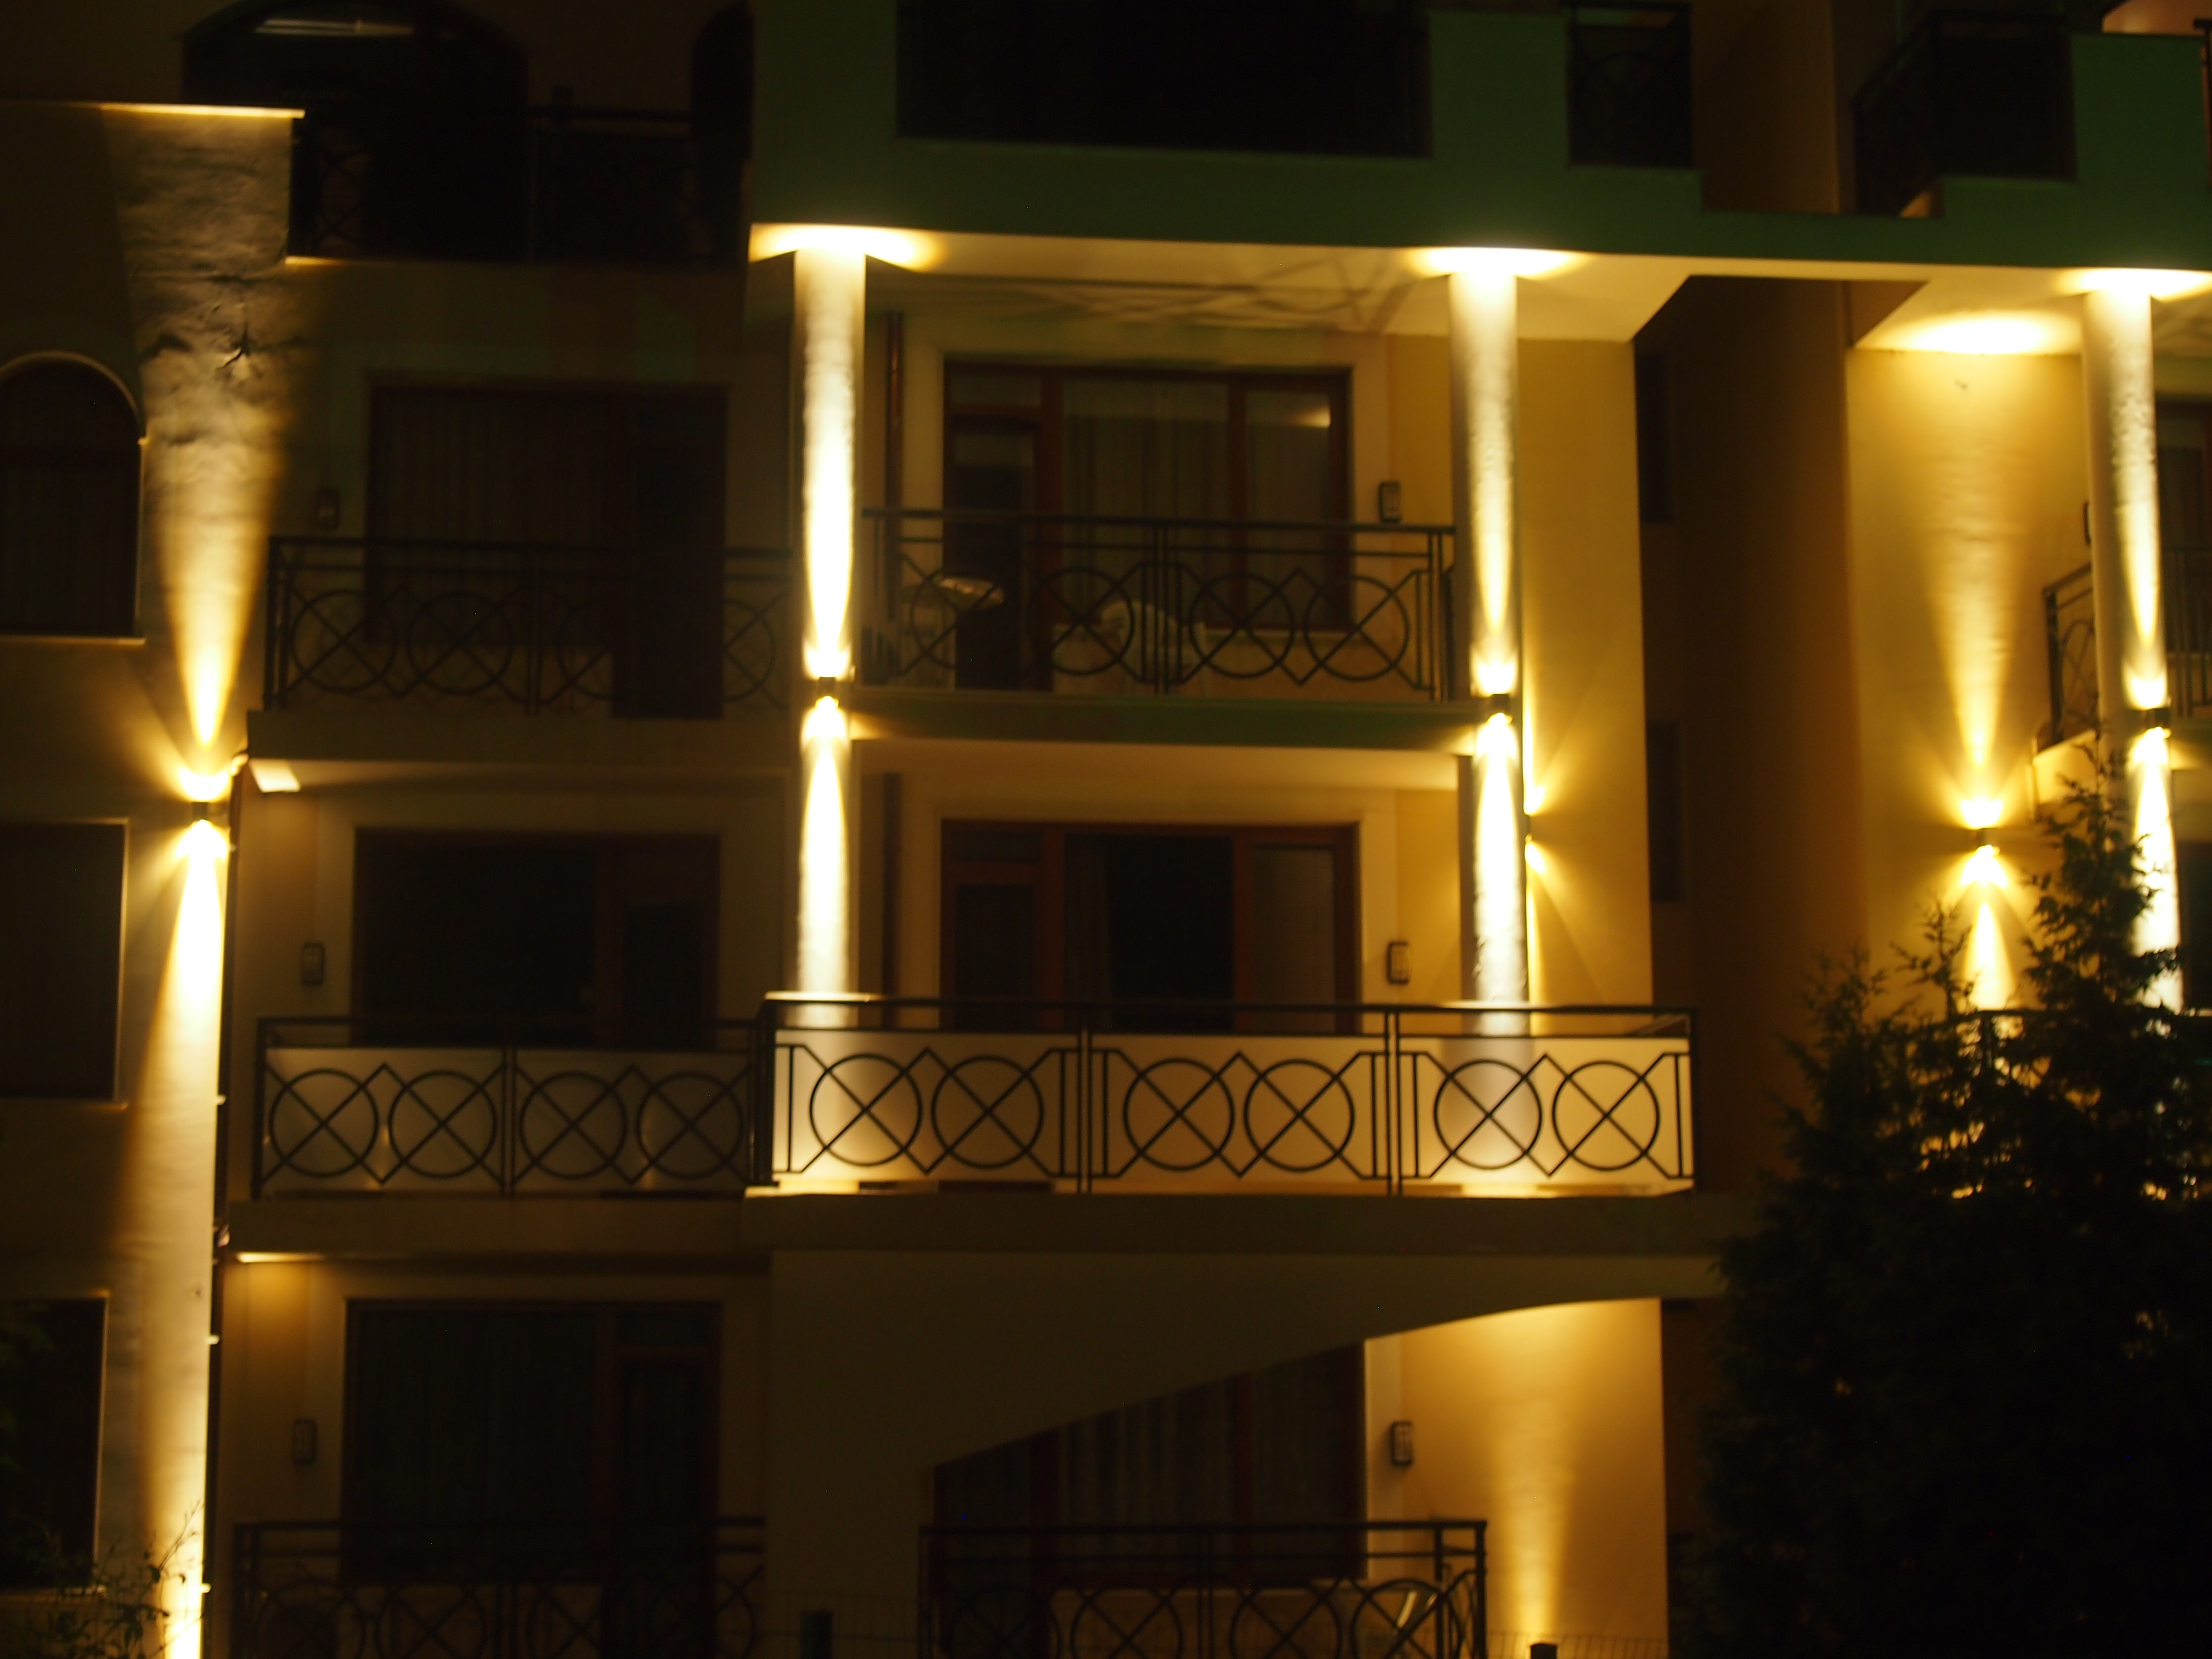 Facade lighting fixtures